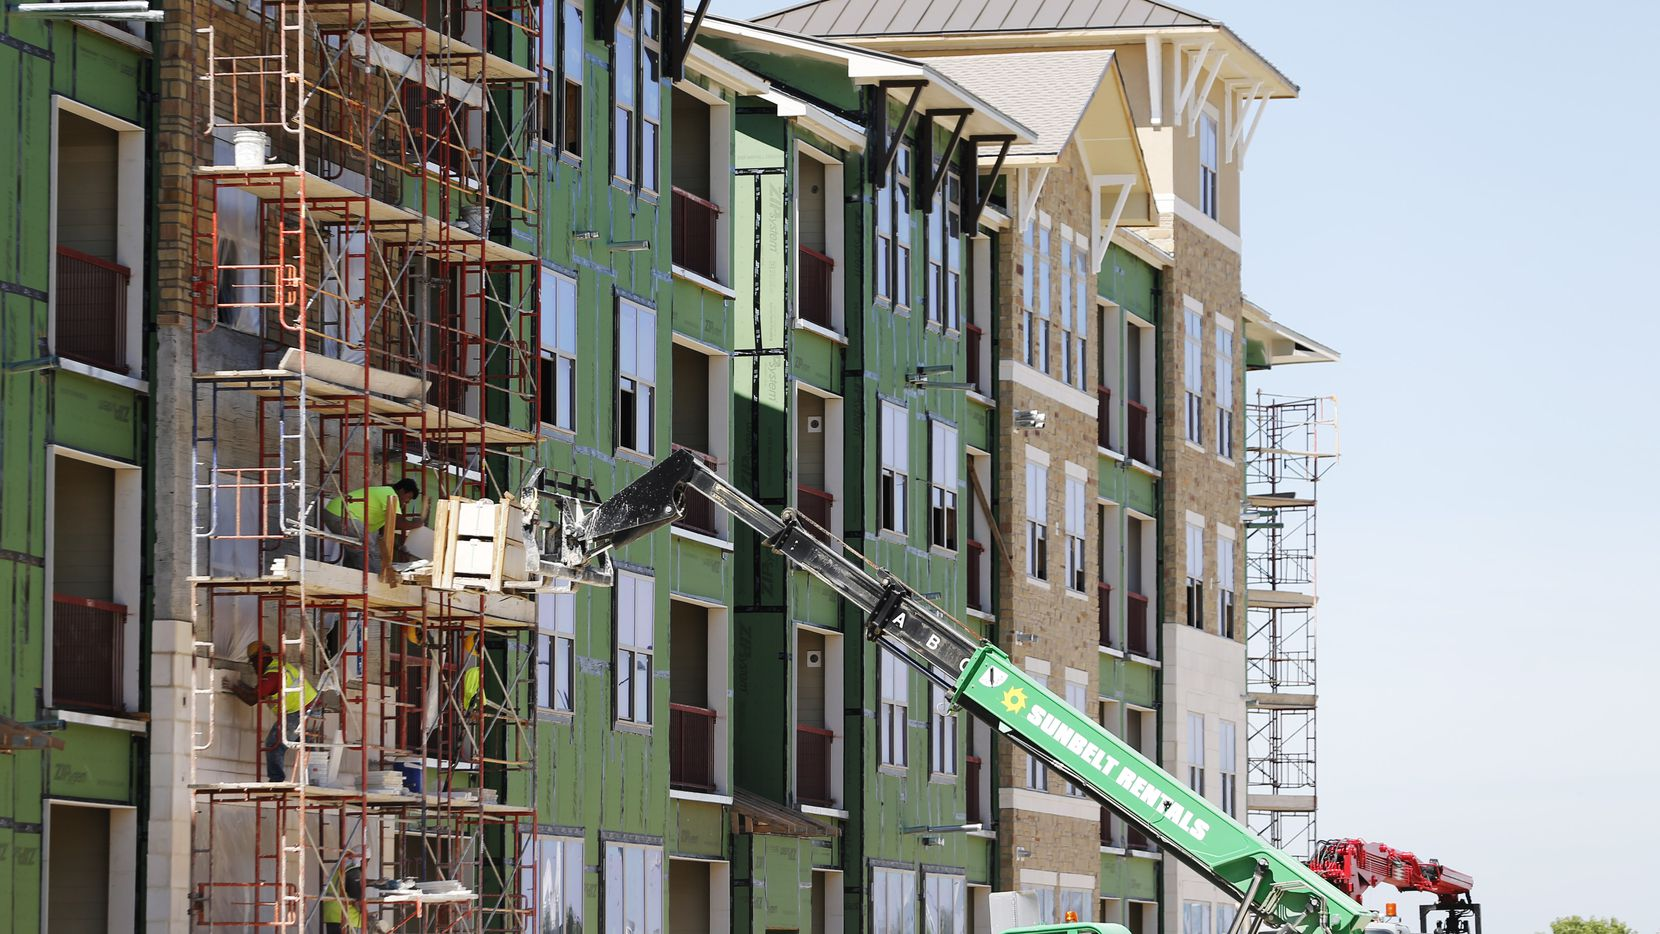 More than 30,000 apartments are under construction in North Texas.